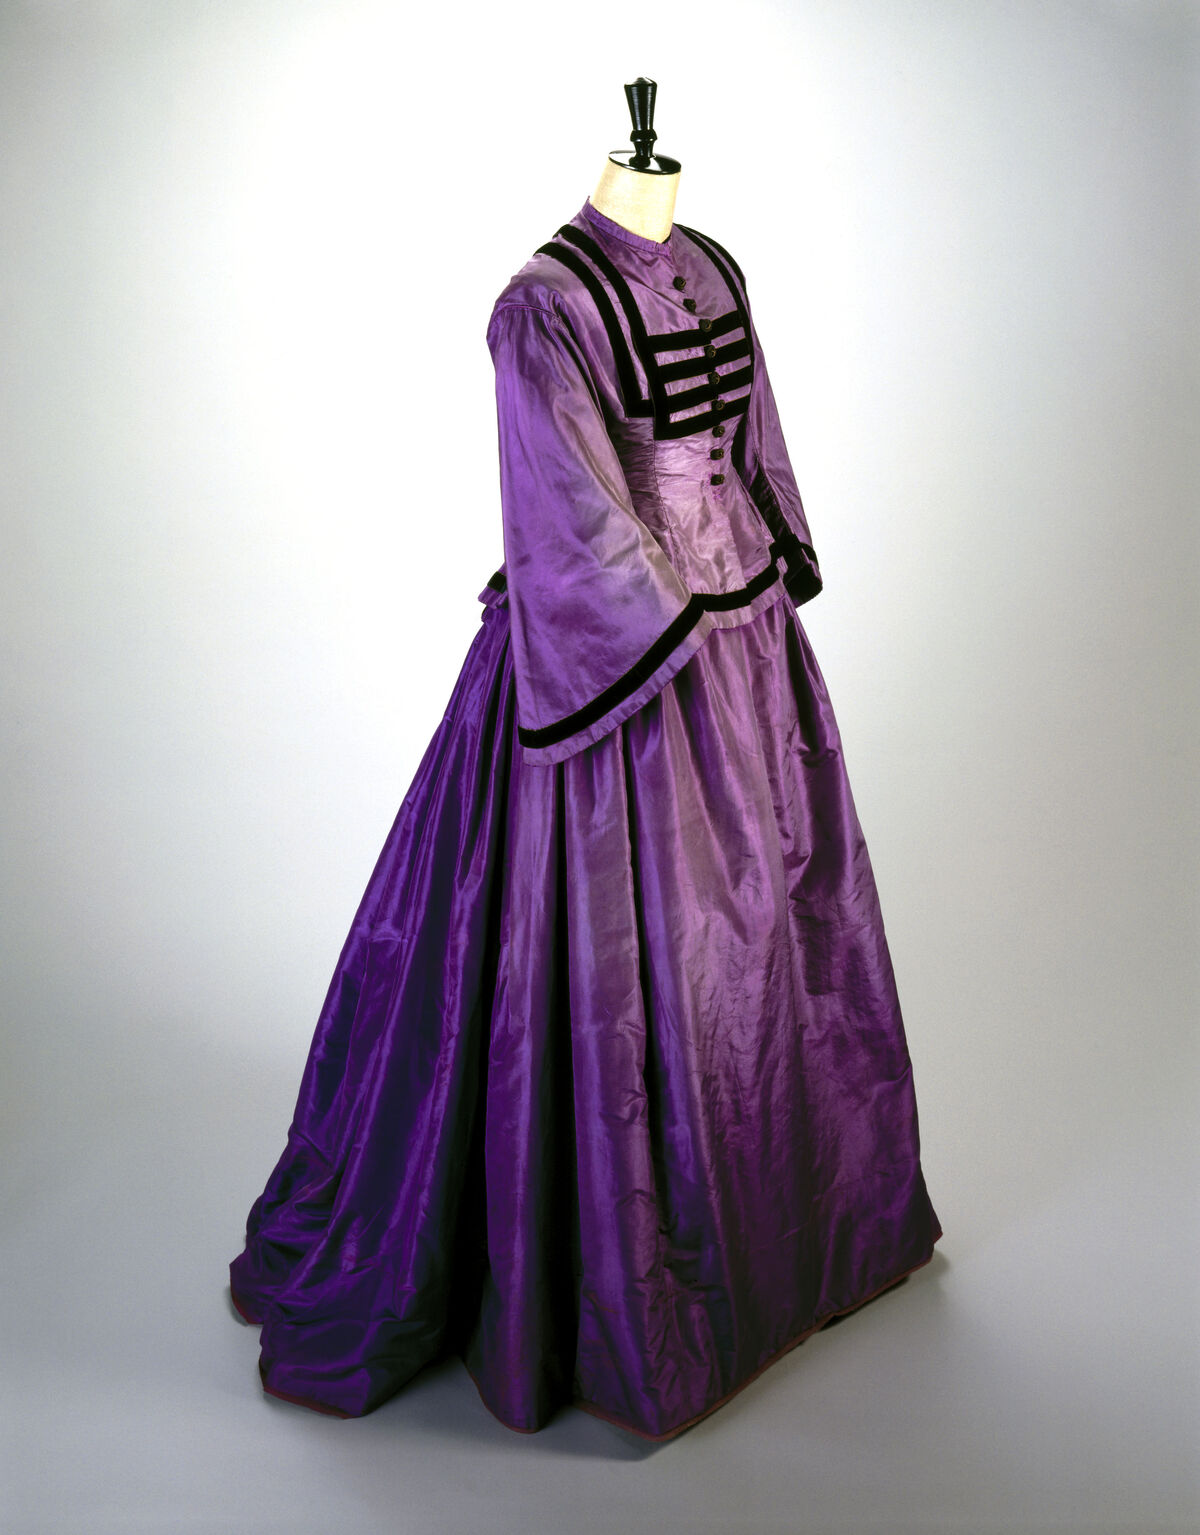 Silk dress dyed with William Henry Perkin's original mauve aniline dye. Photo by SSPL/Getty Images.